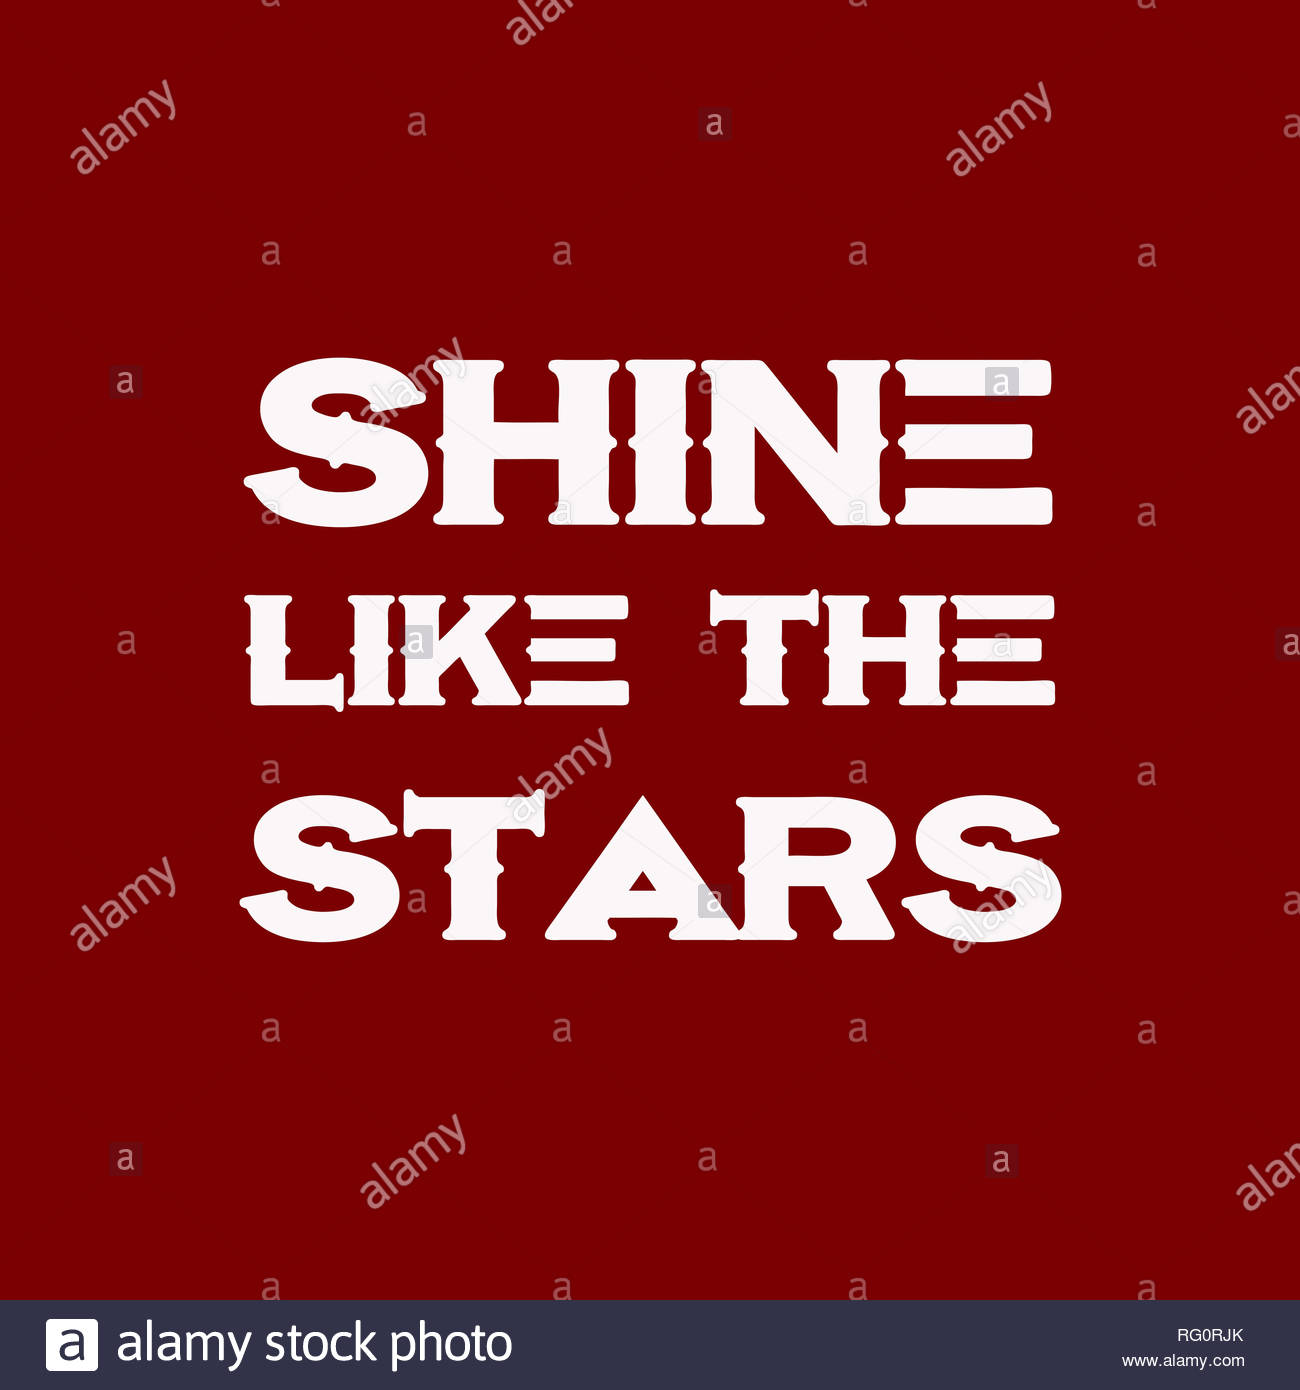 shine like the stars motivational and inspirational quote 2 rg0rjf RG0RJK